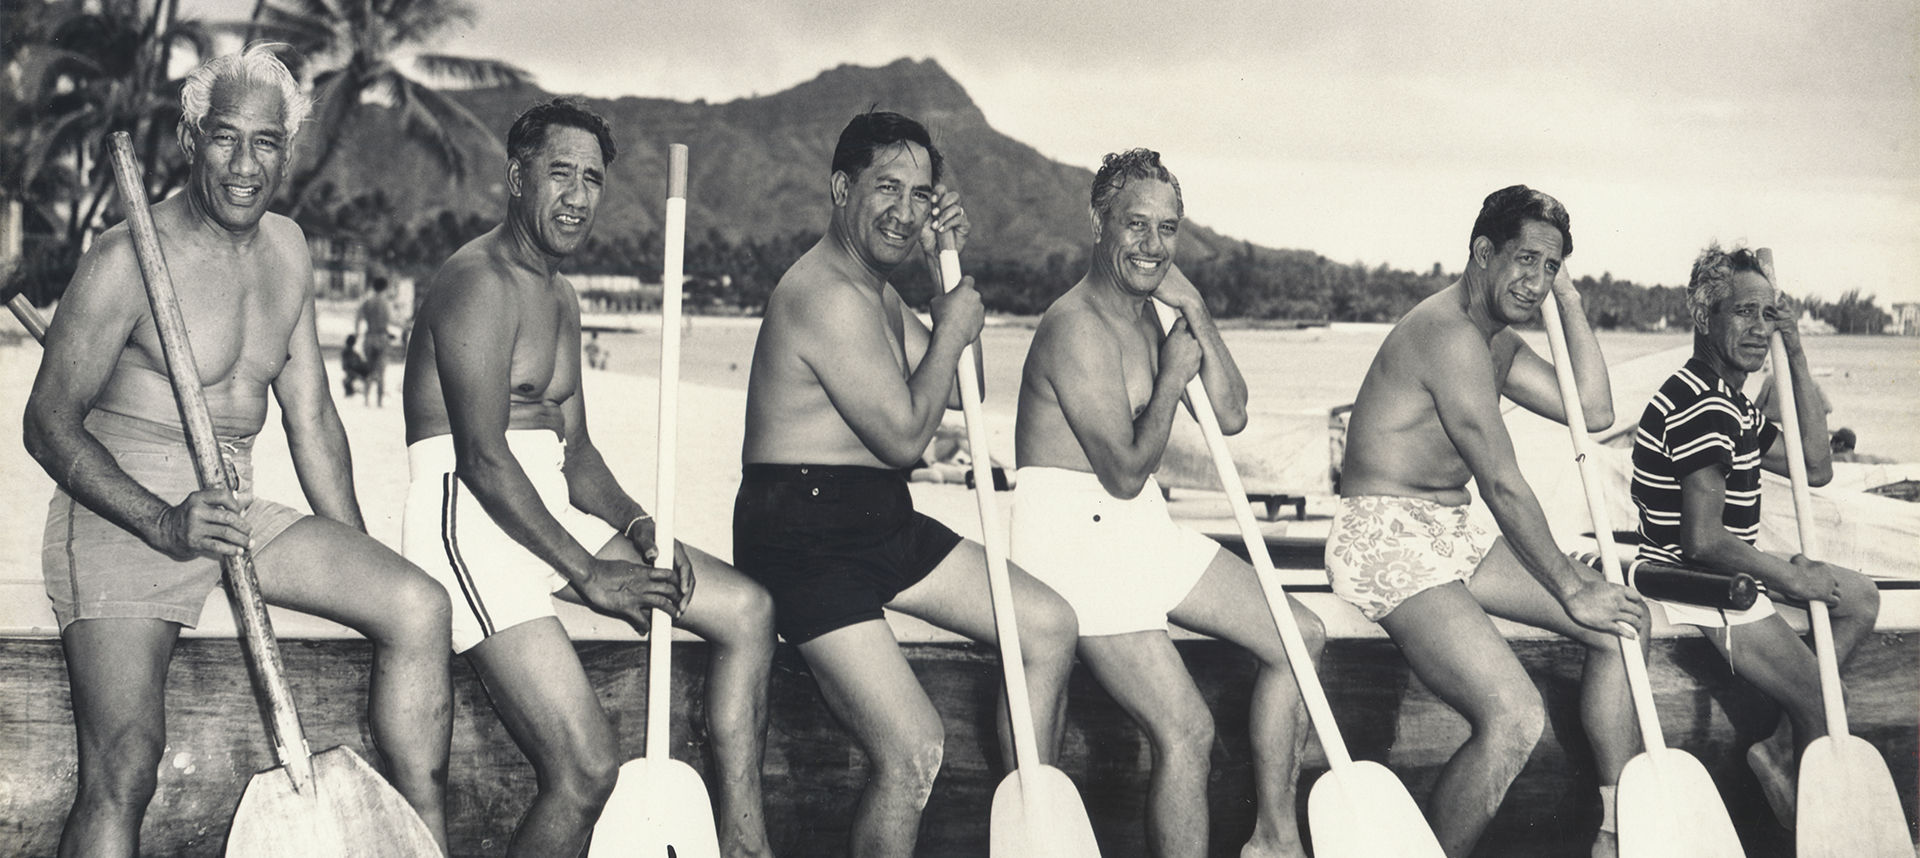 Duke and other men near the water with oars